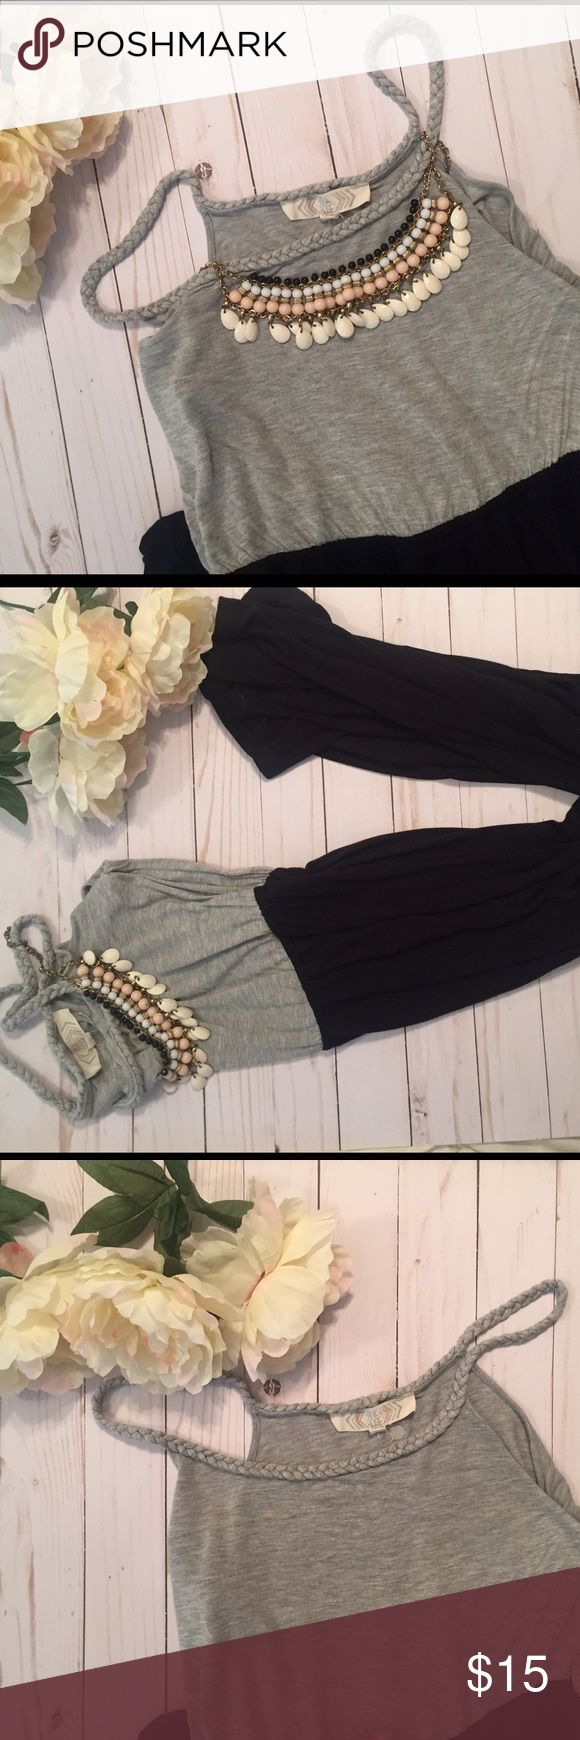 Grey & Black Maxi Dress Grey top and black skirt Maxi Dress, very flattering and casual. Dresses Maxi